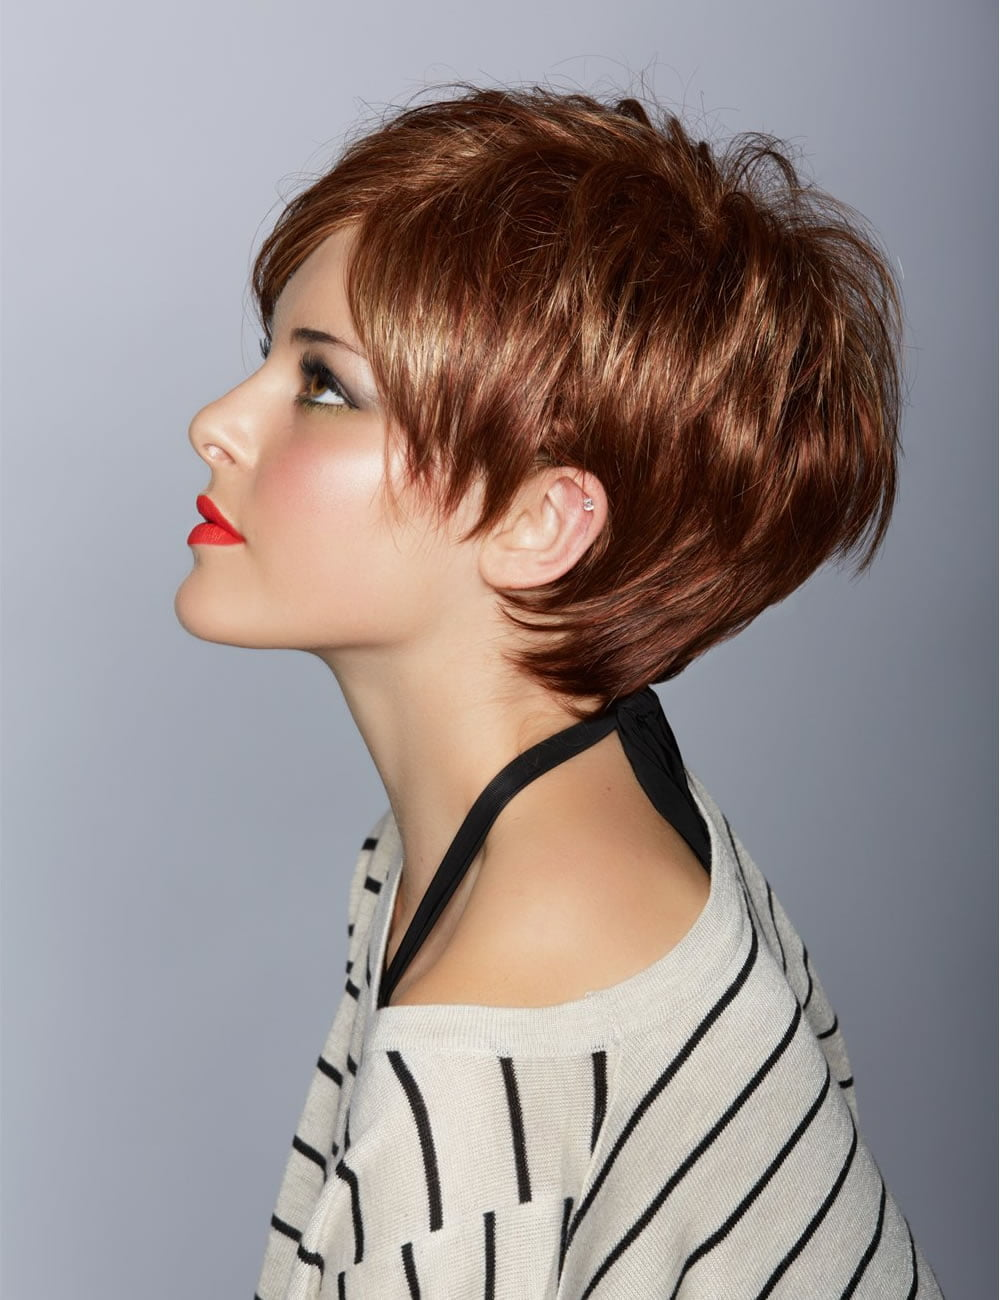 Latest winter hairstyles with short hair Short haircuts for women pics